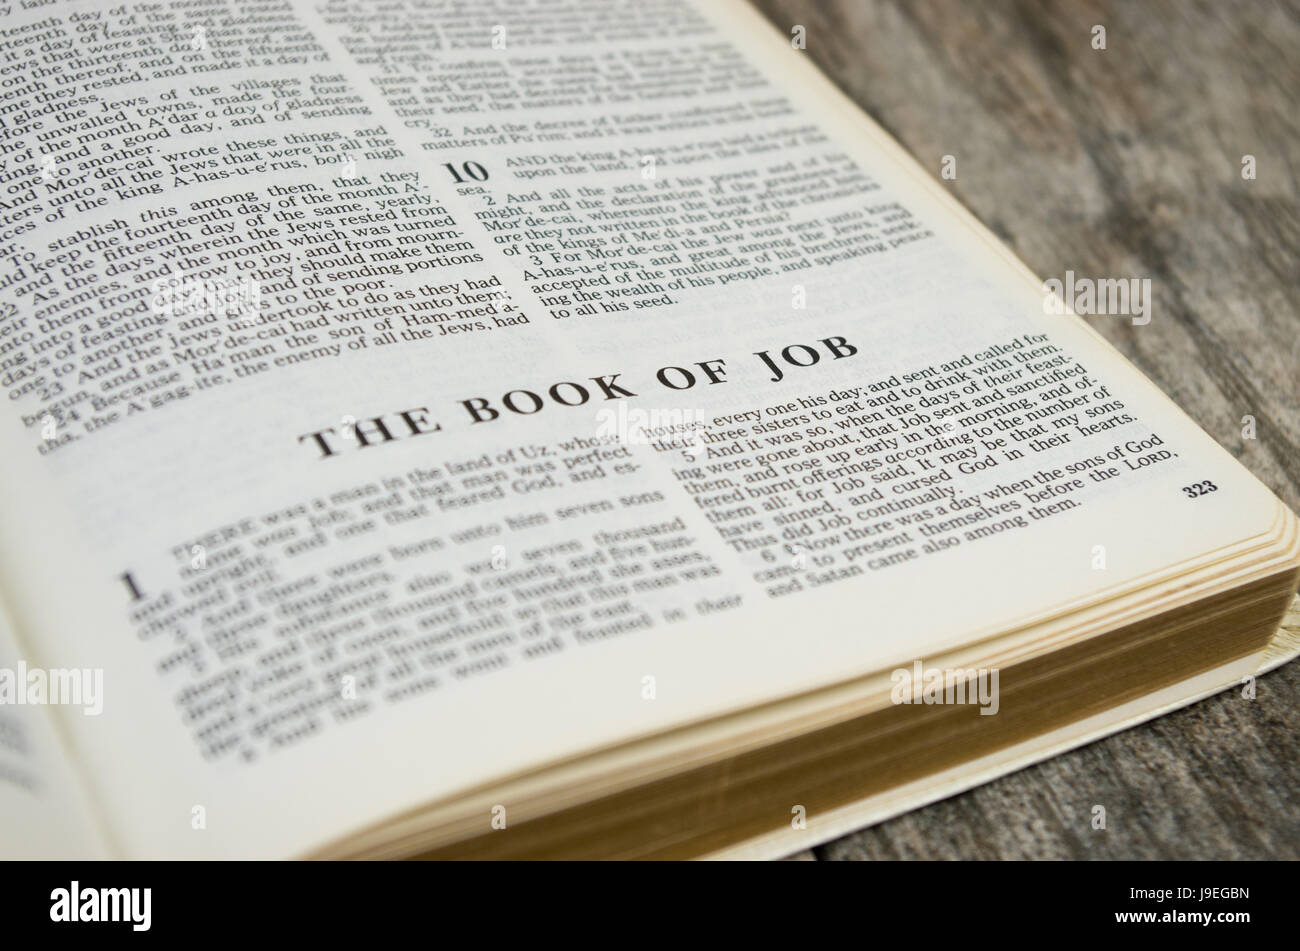 Title page for the book of Job in the Bible – King James Version - Stock Image